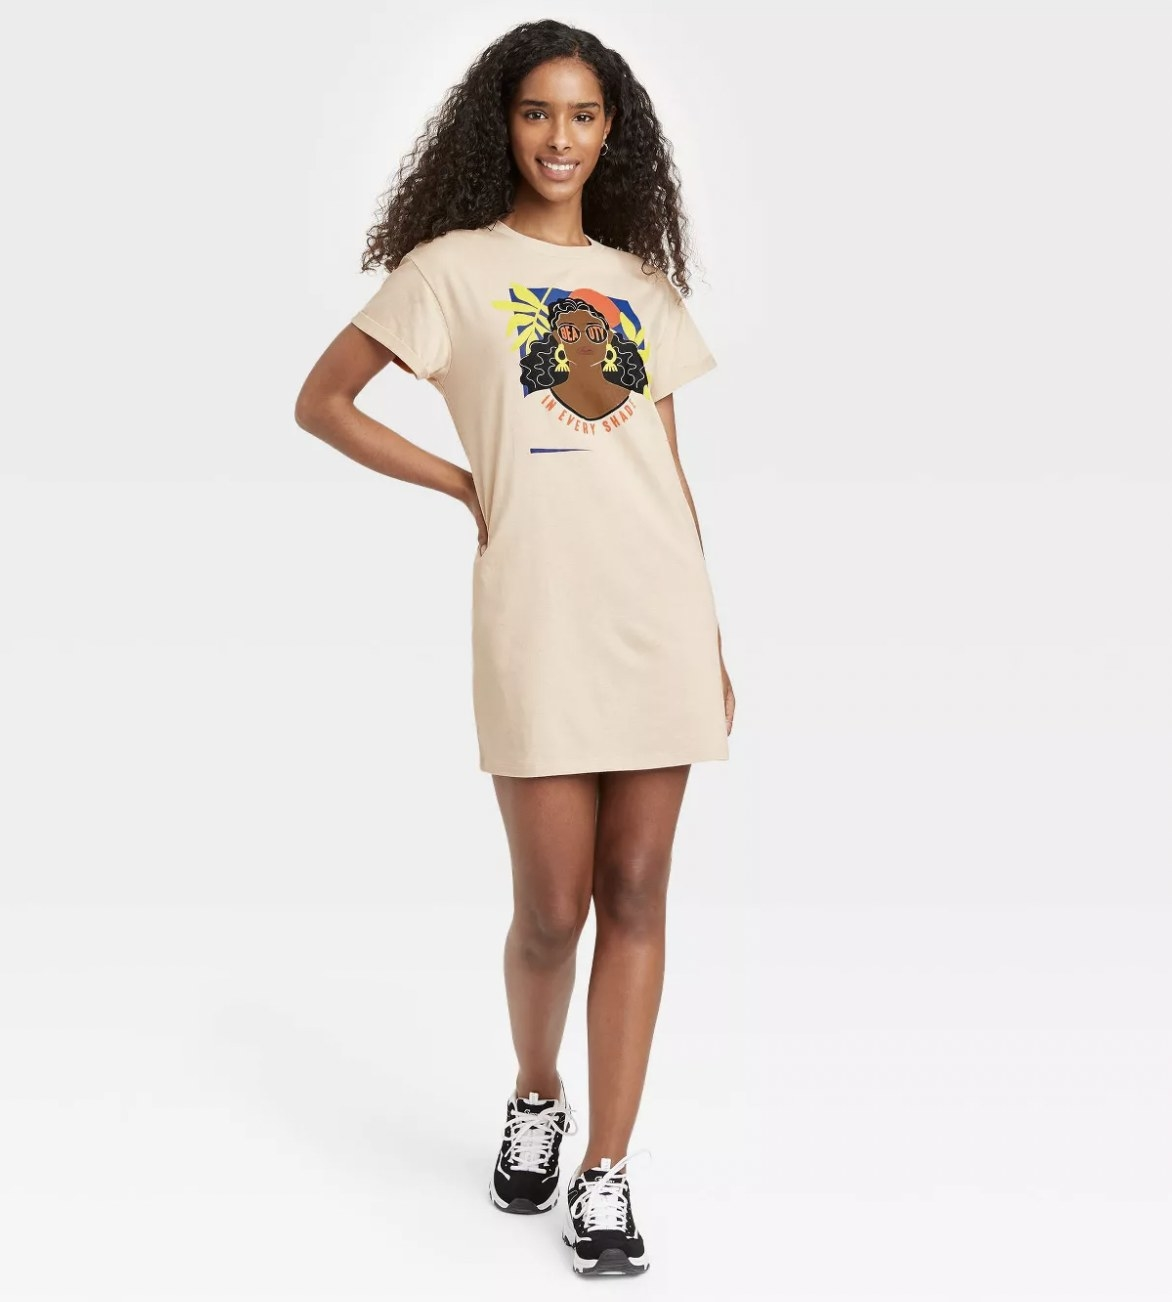 A model wearing a T-shirt dress with an African American woman graphic